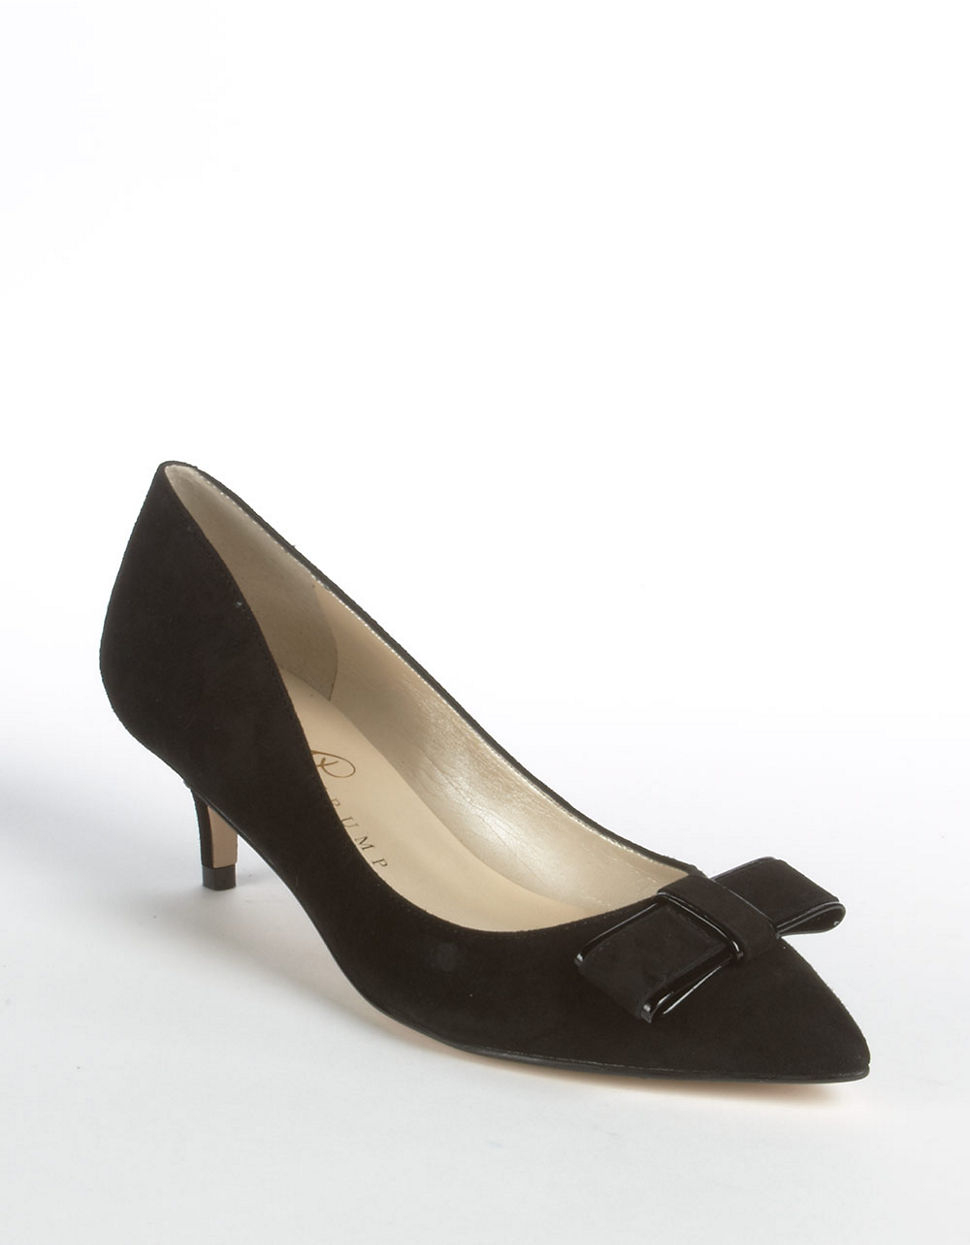 Ivanka Trump Walker Suede Kitten Heel Pumps in Black | Lyst